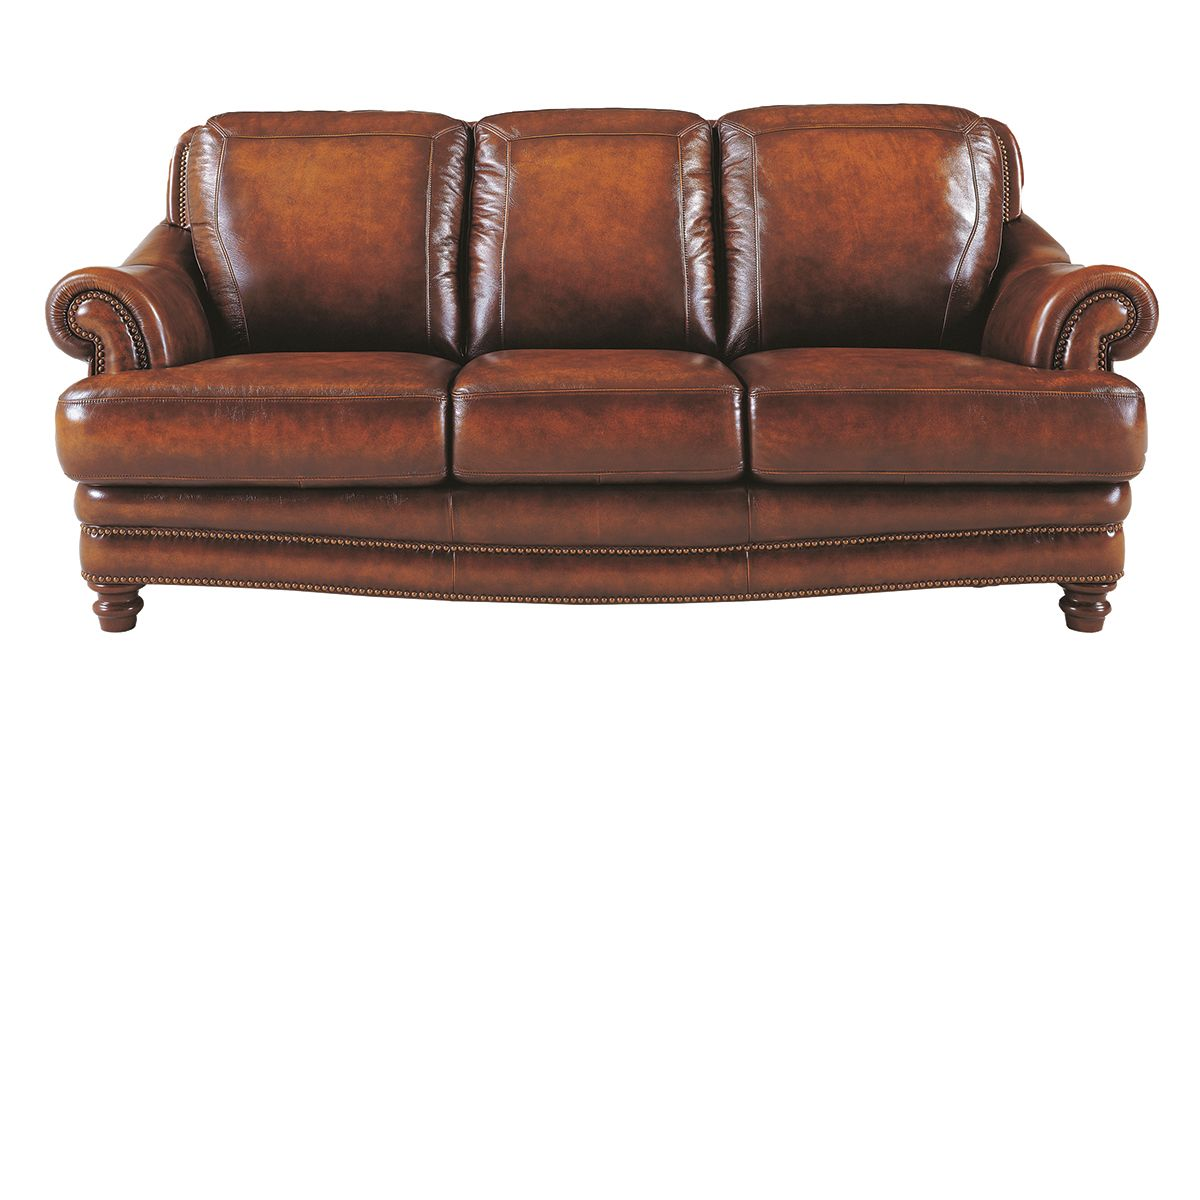 The Dump Furniture Tannery Closeout Top Grain Leather Sofa